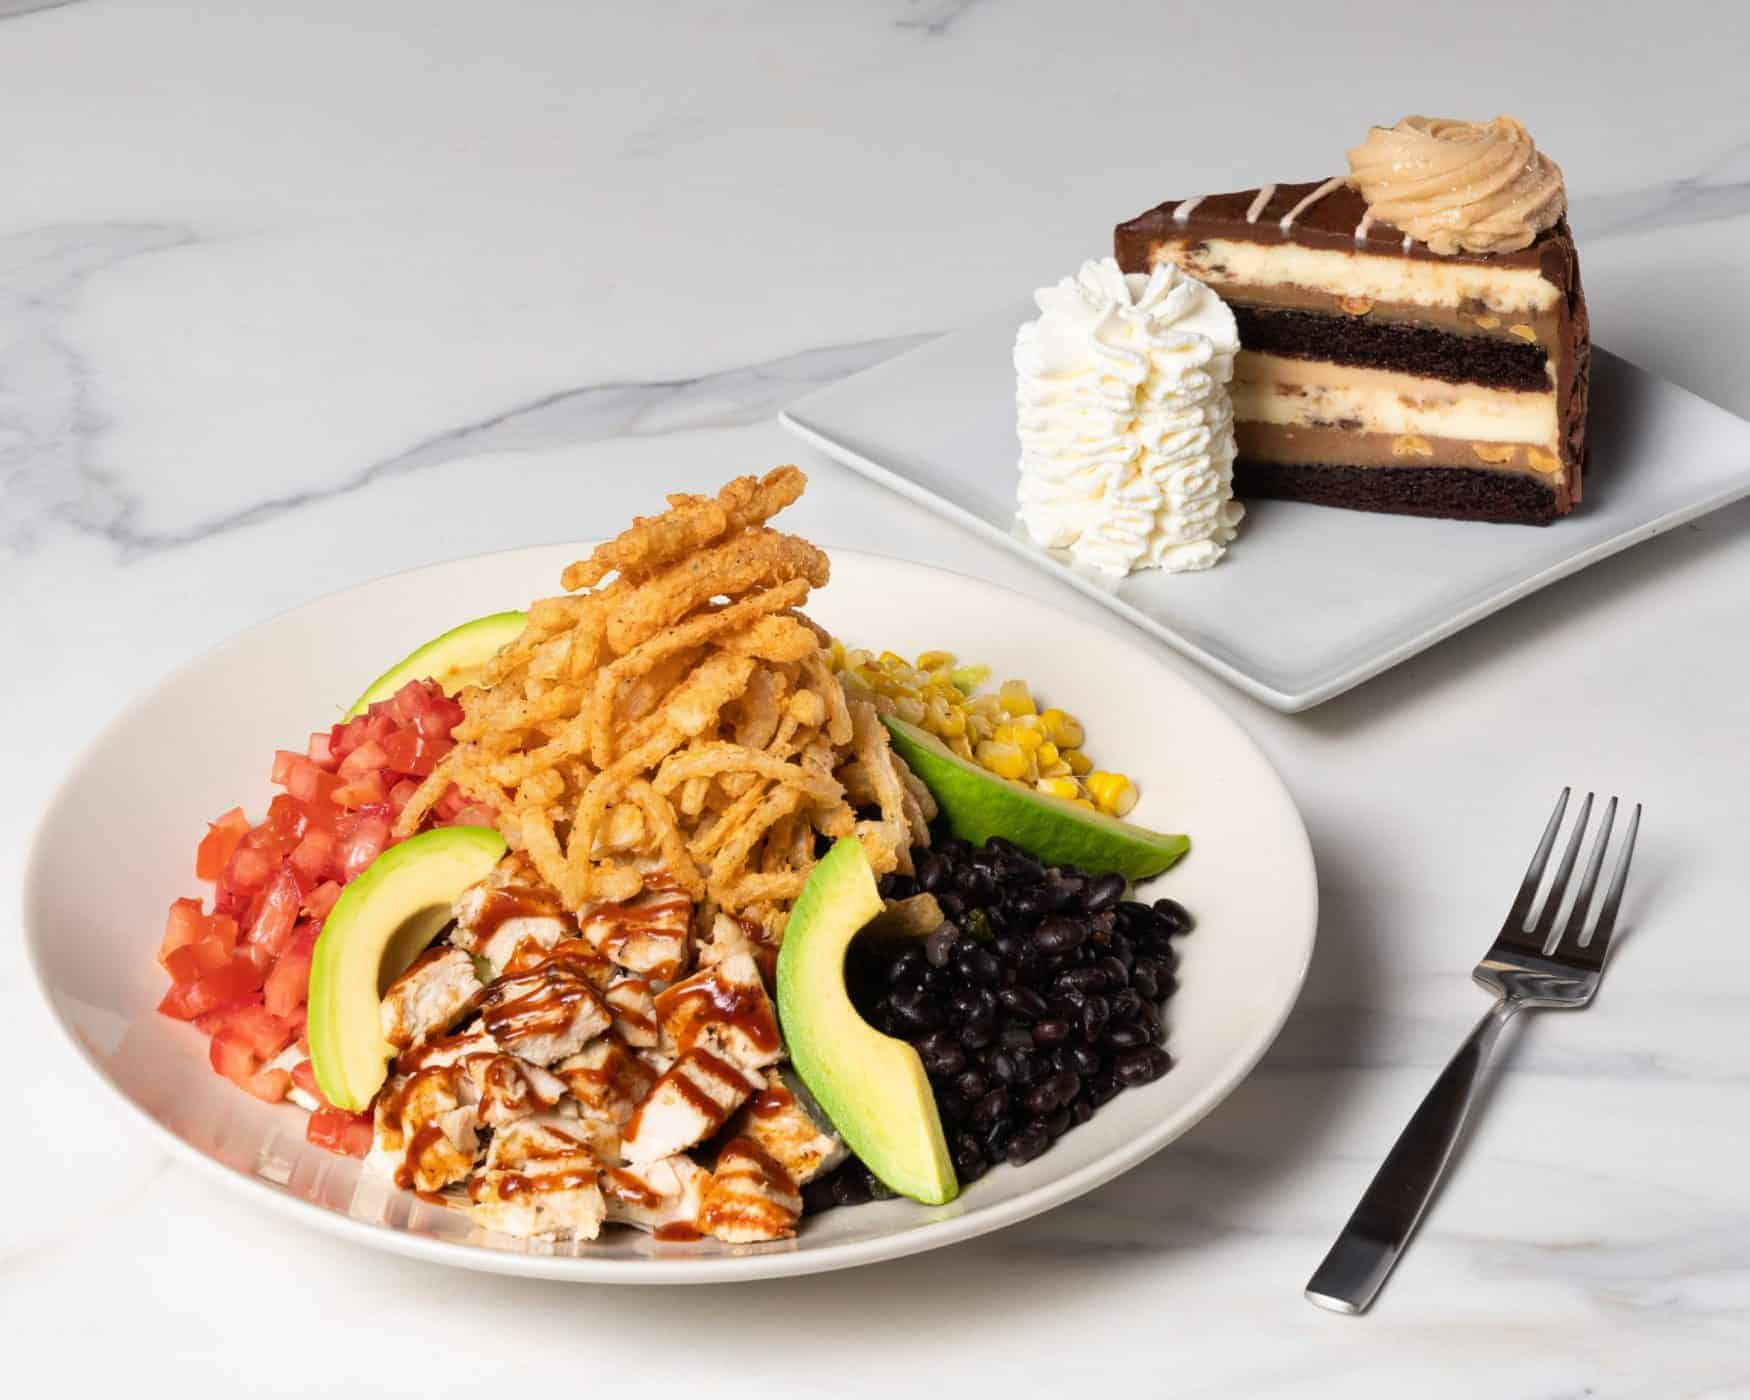 The Cheesecake Factory: $15 lunch special includes slice of cheesecake - Living On The Cheap